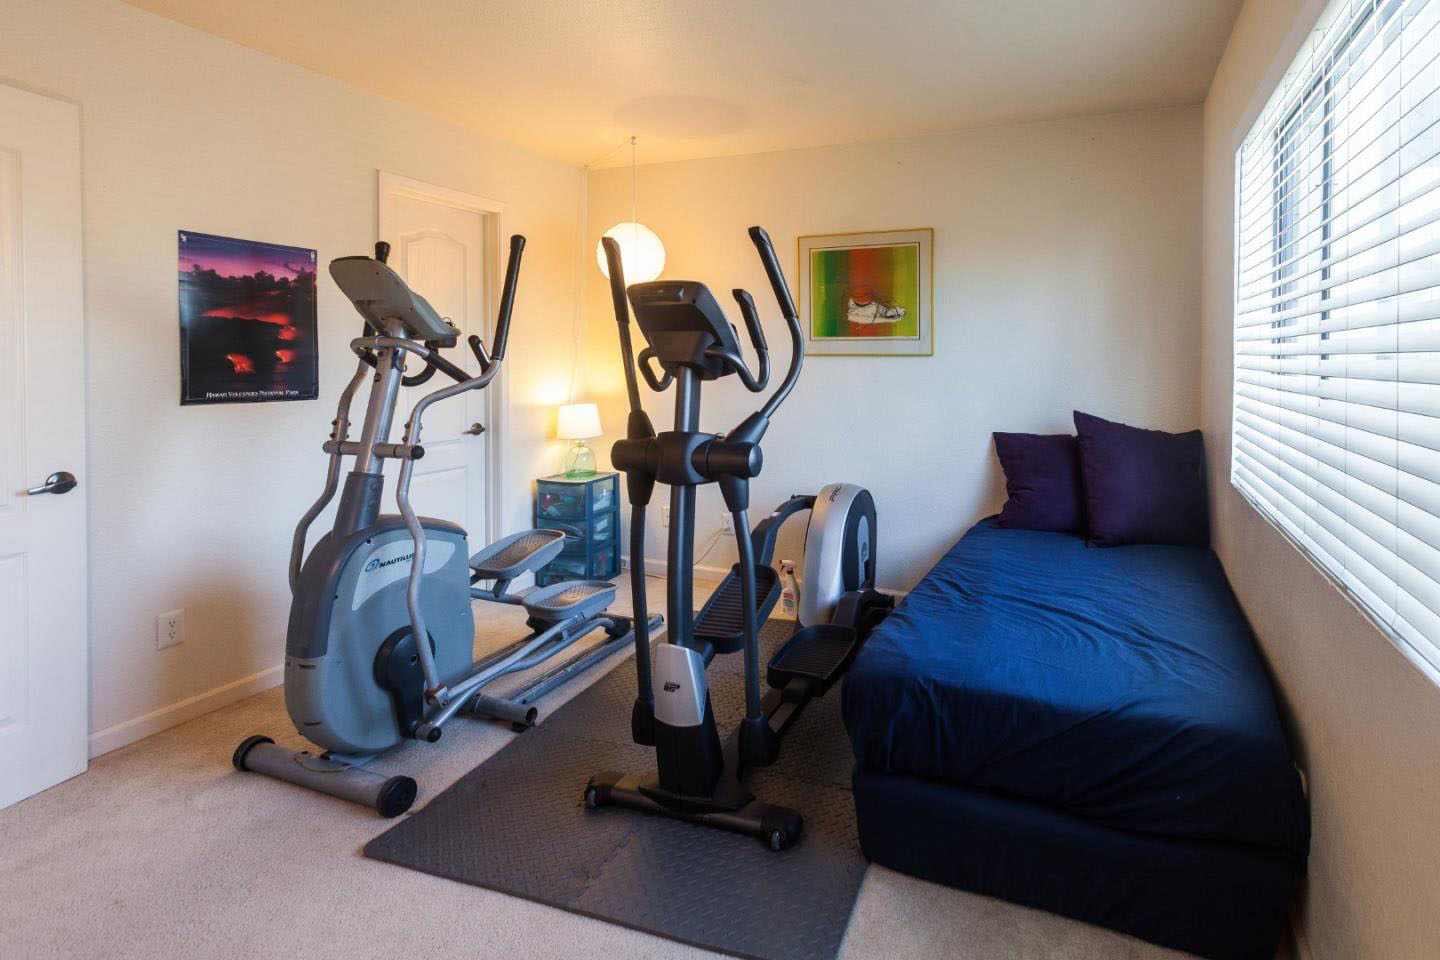 2-Story Condo In Westside Sunny Deck + In-Unit Laundry Room